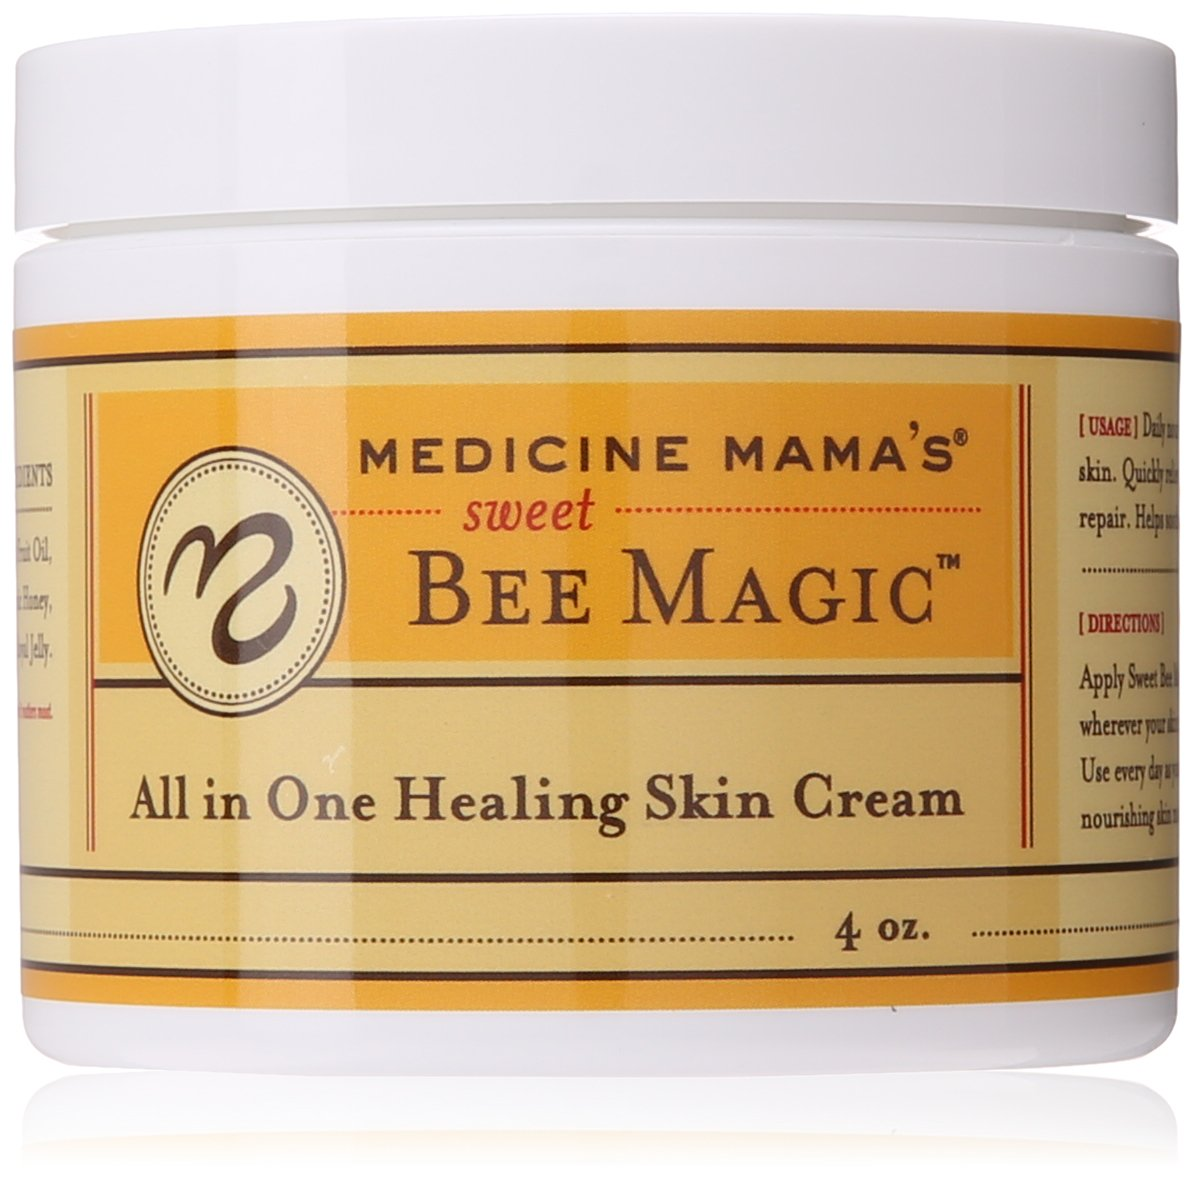 Medicine Mama's Apothecary Sweet Bee Magic All In One Healing Skin Cream, 4 Ounce by Medicine Mama's Apothecary